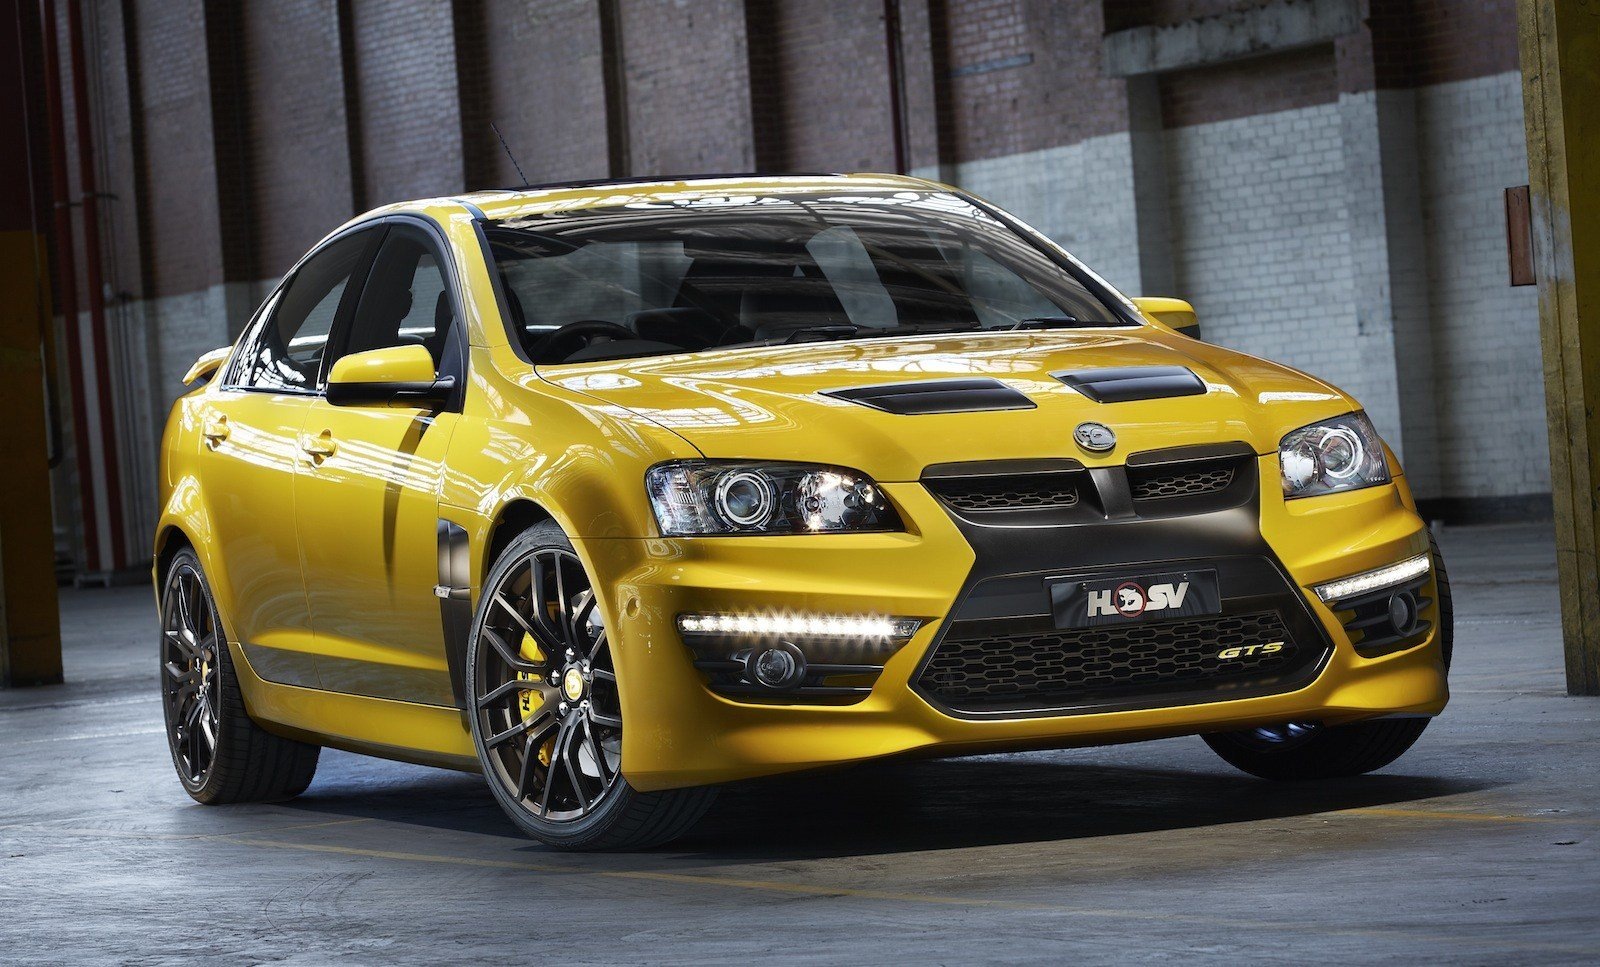 New Hsv Gts 25Th Anniversary Limited Edition Unleashed Photos 1 Of 10 On This Month